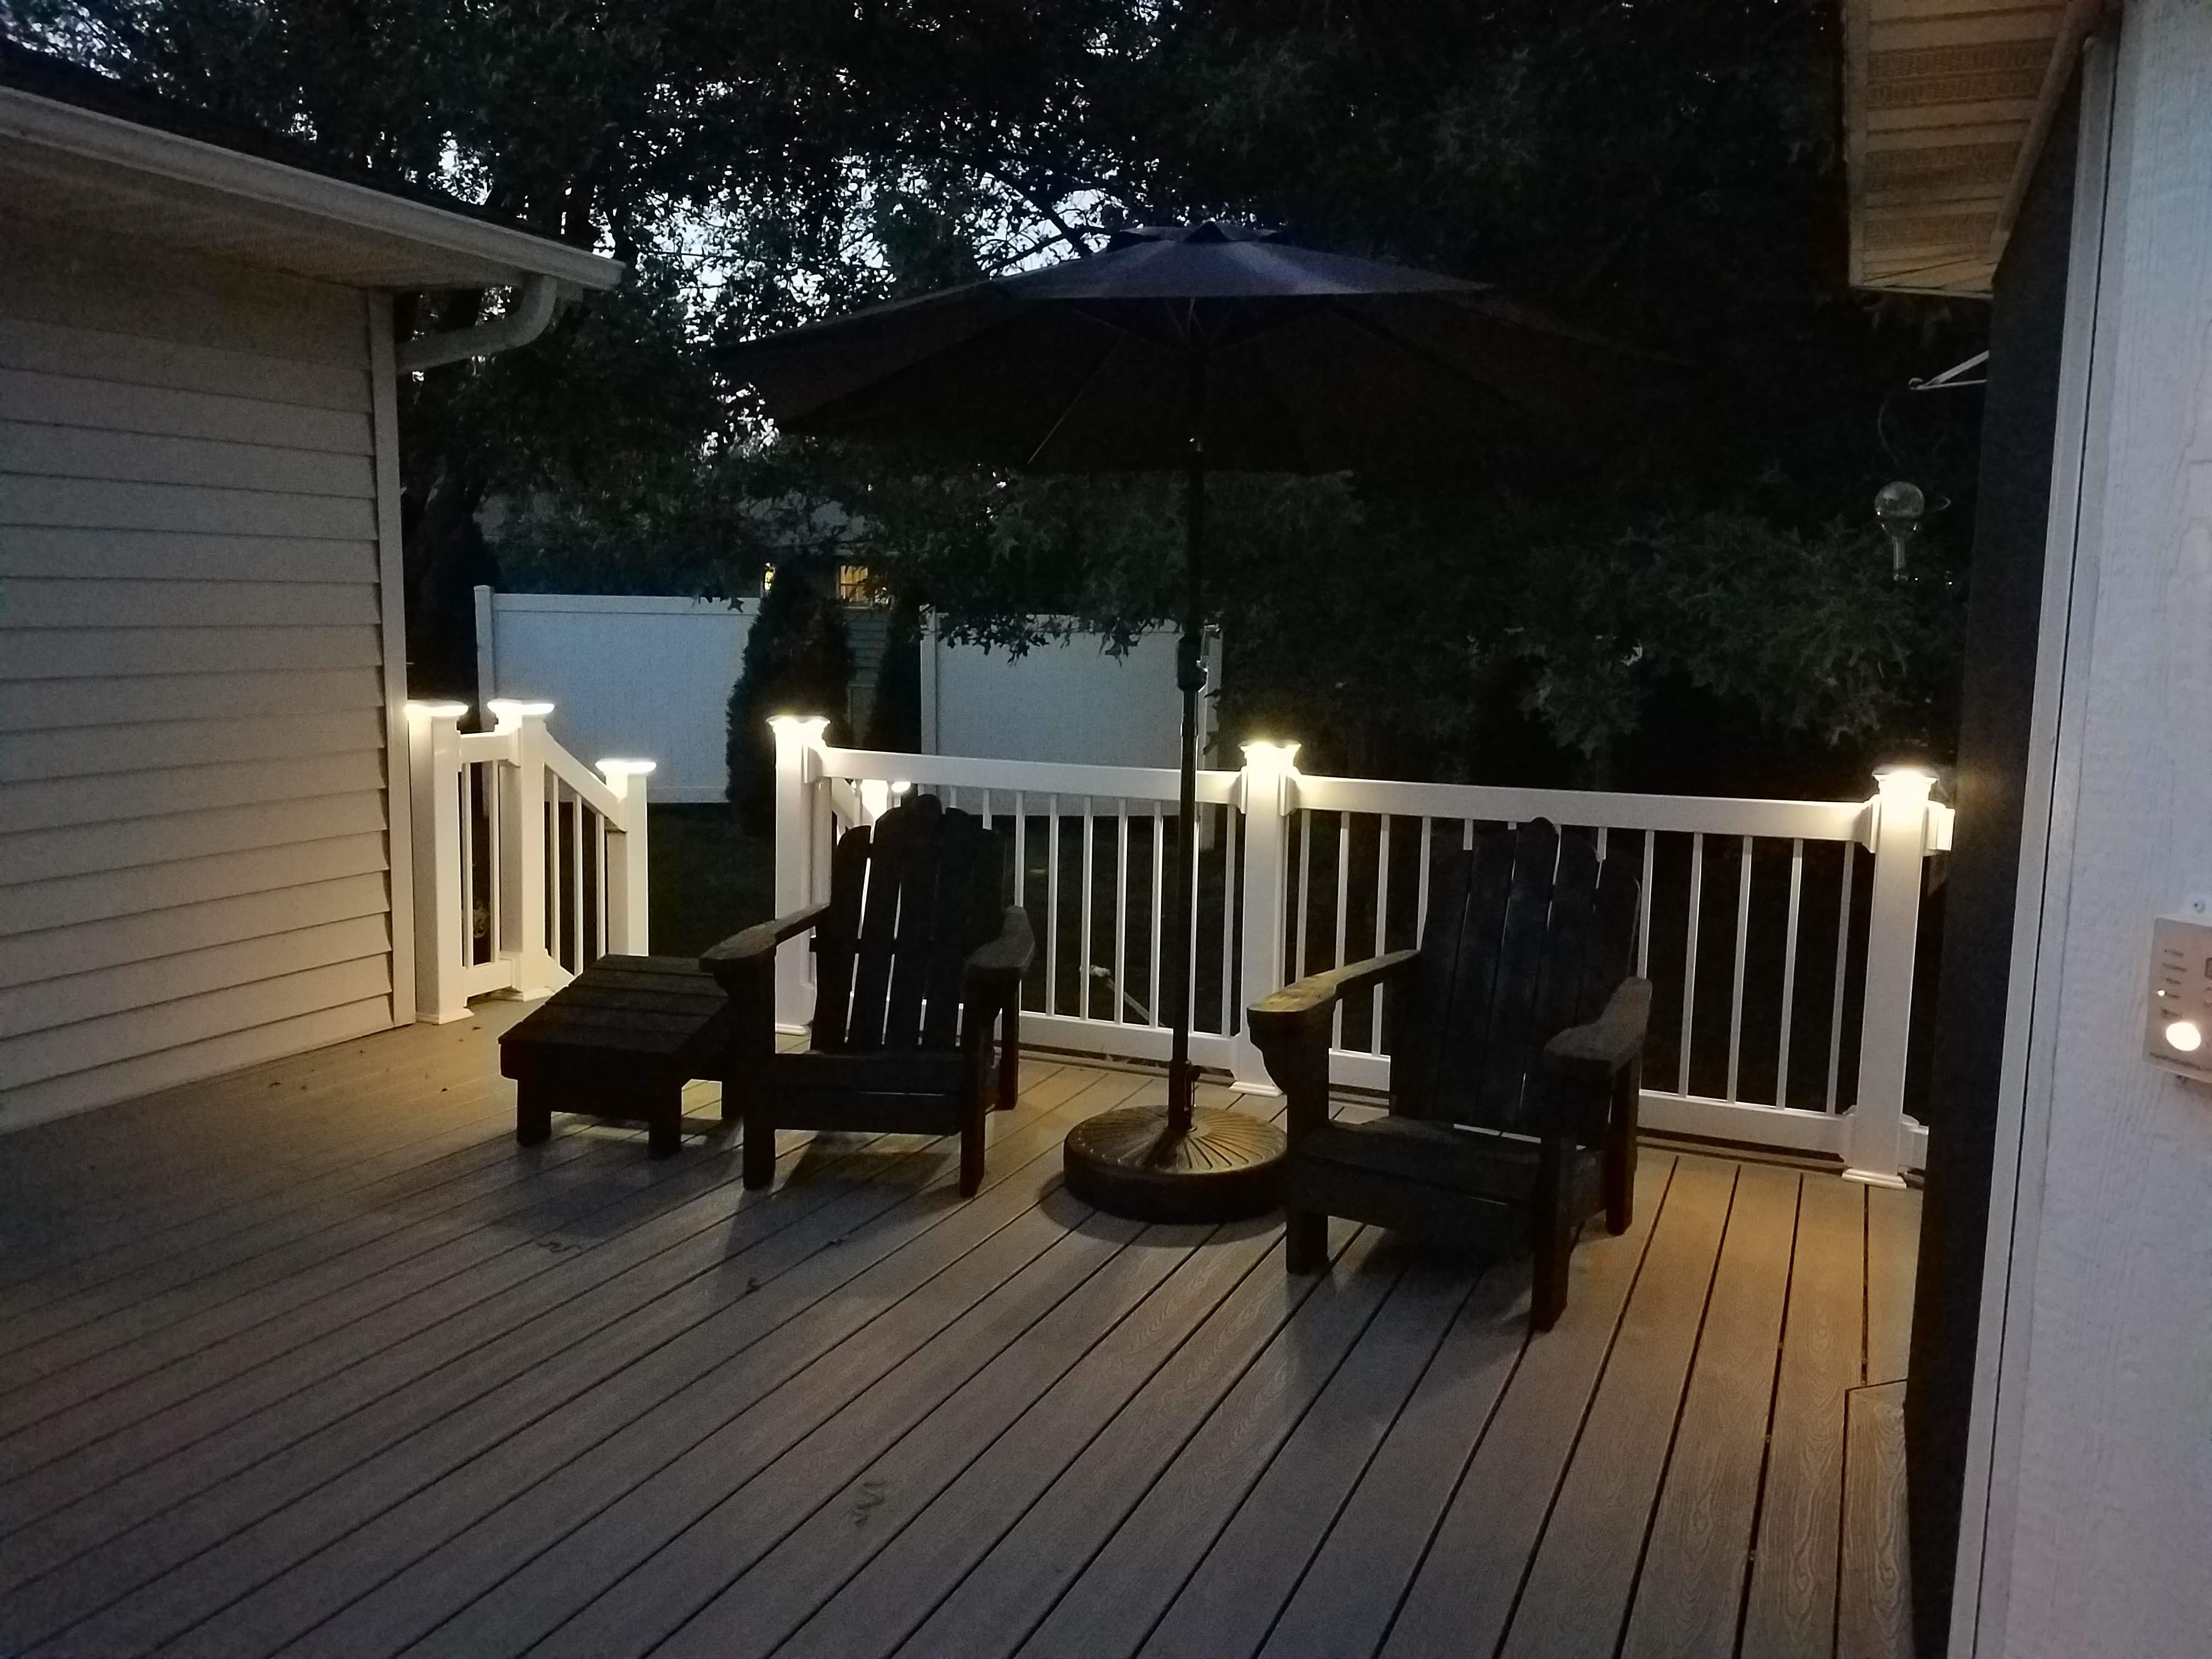 LMT Vinyl Deck Lighting